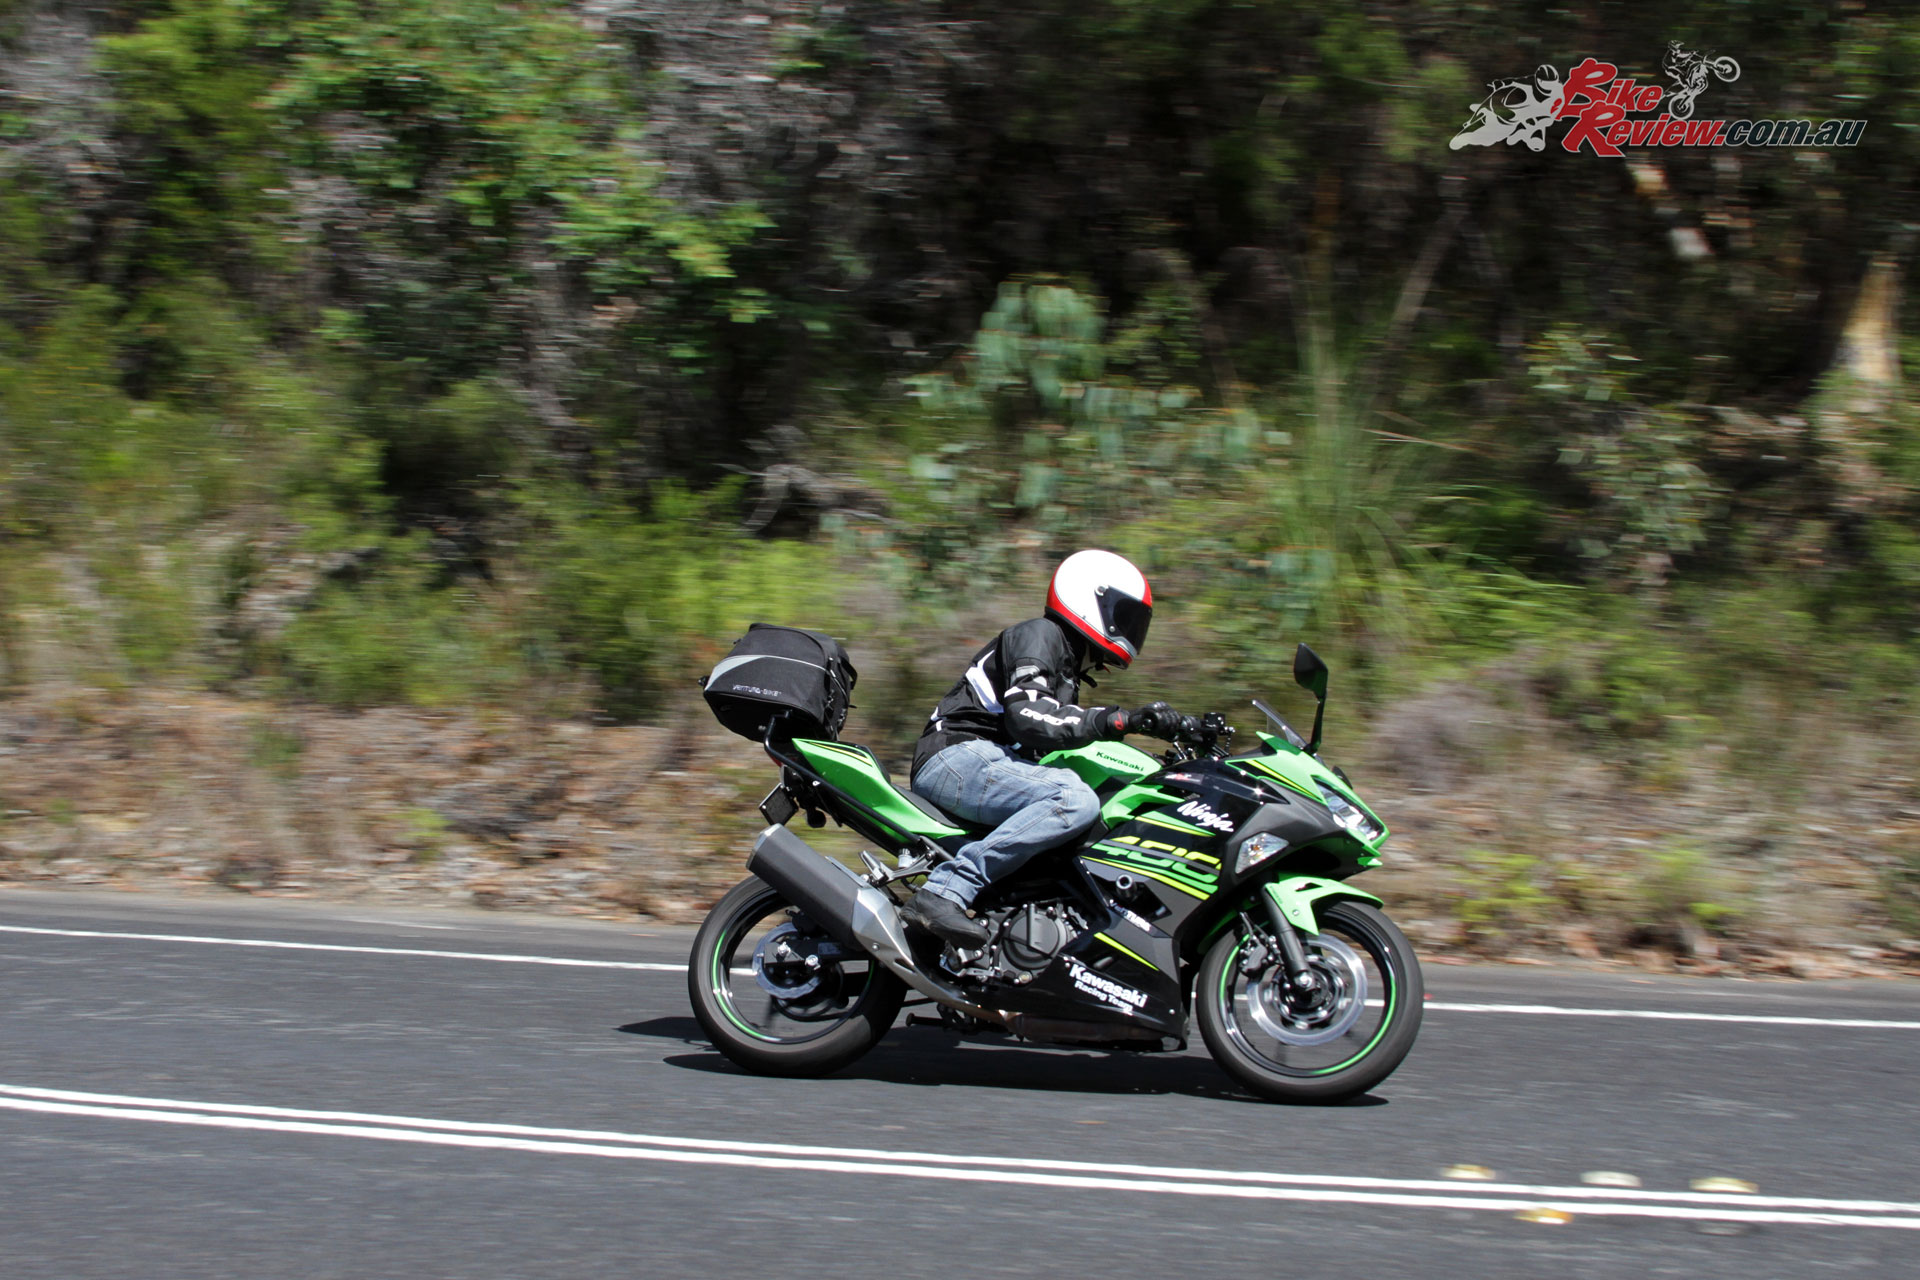 Hopefully you've had some great rides over the Christmas period, as we've certainly had fun on our Long Term Ninja 400